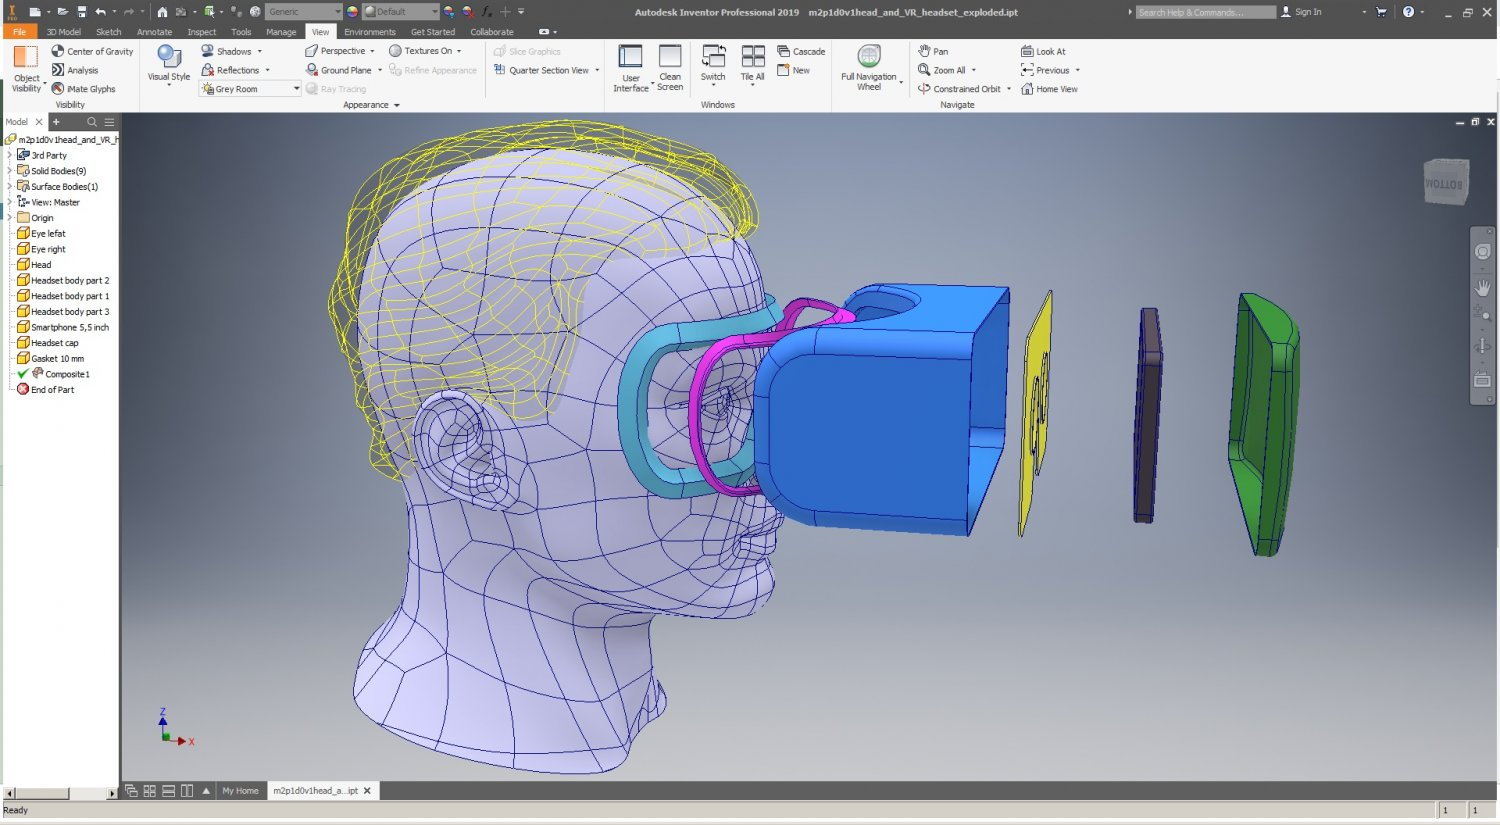 cad male head model m2p1d0v1head and vr headset template 3d model in